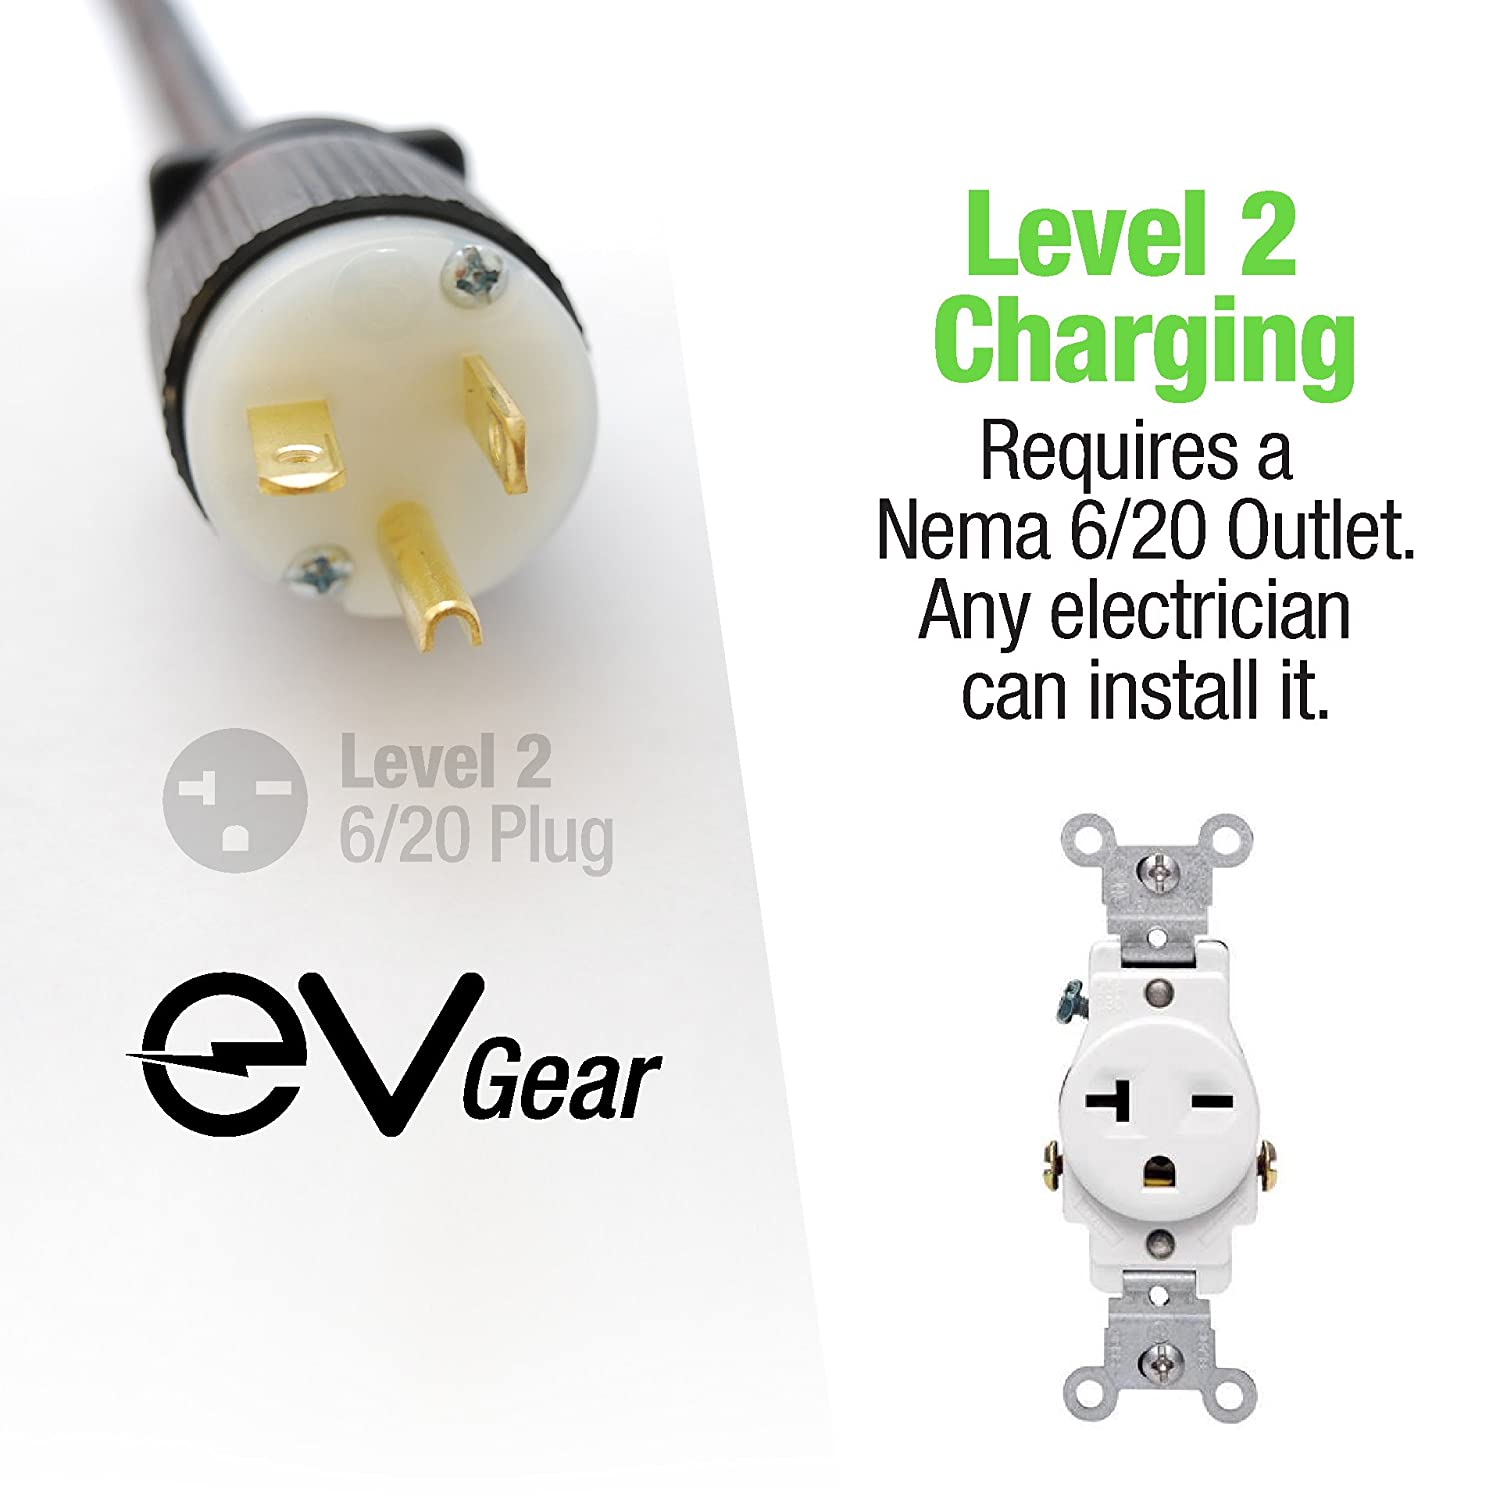 Level 2 Ev Charger By Gear 30 Ft Portable Plug In Nema 6 15 Receptacle Wiring Diagram 110v 240v Includes 1 Adapter Works With All Electric Hybrid Cars